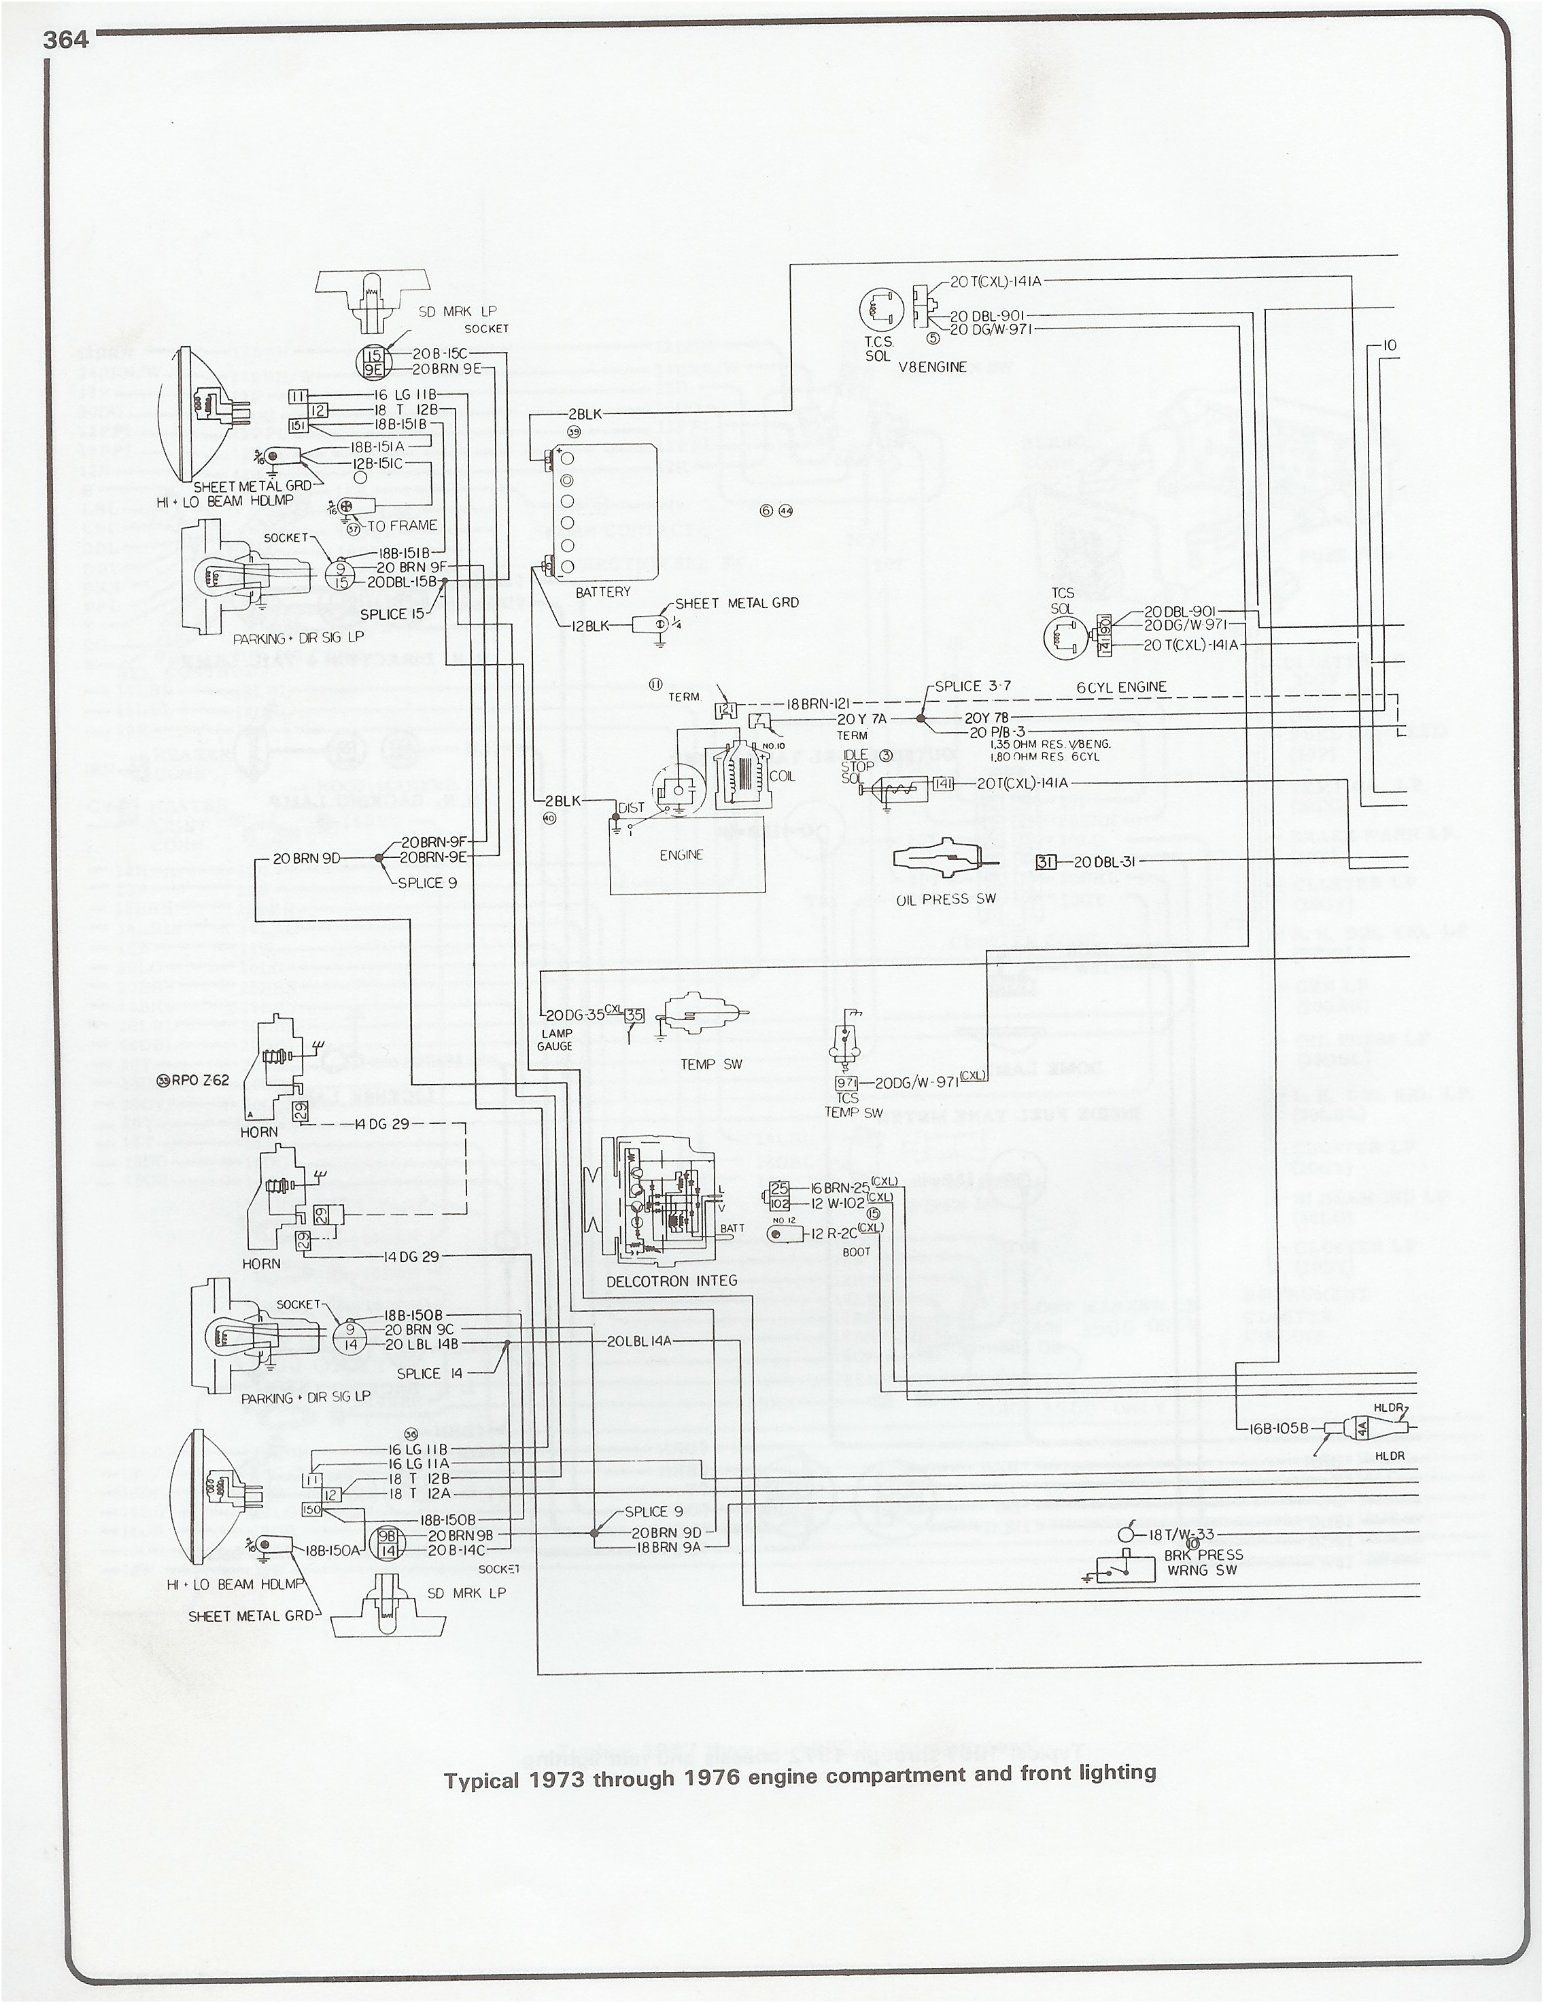 wiring diagram 1973 1976 chevy pickup chevy wiring diagram 1976 chevy truck [ 1544 x 2003 Pixel ]